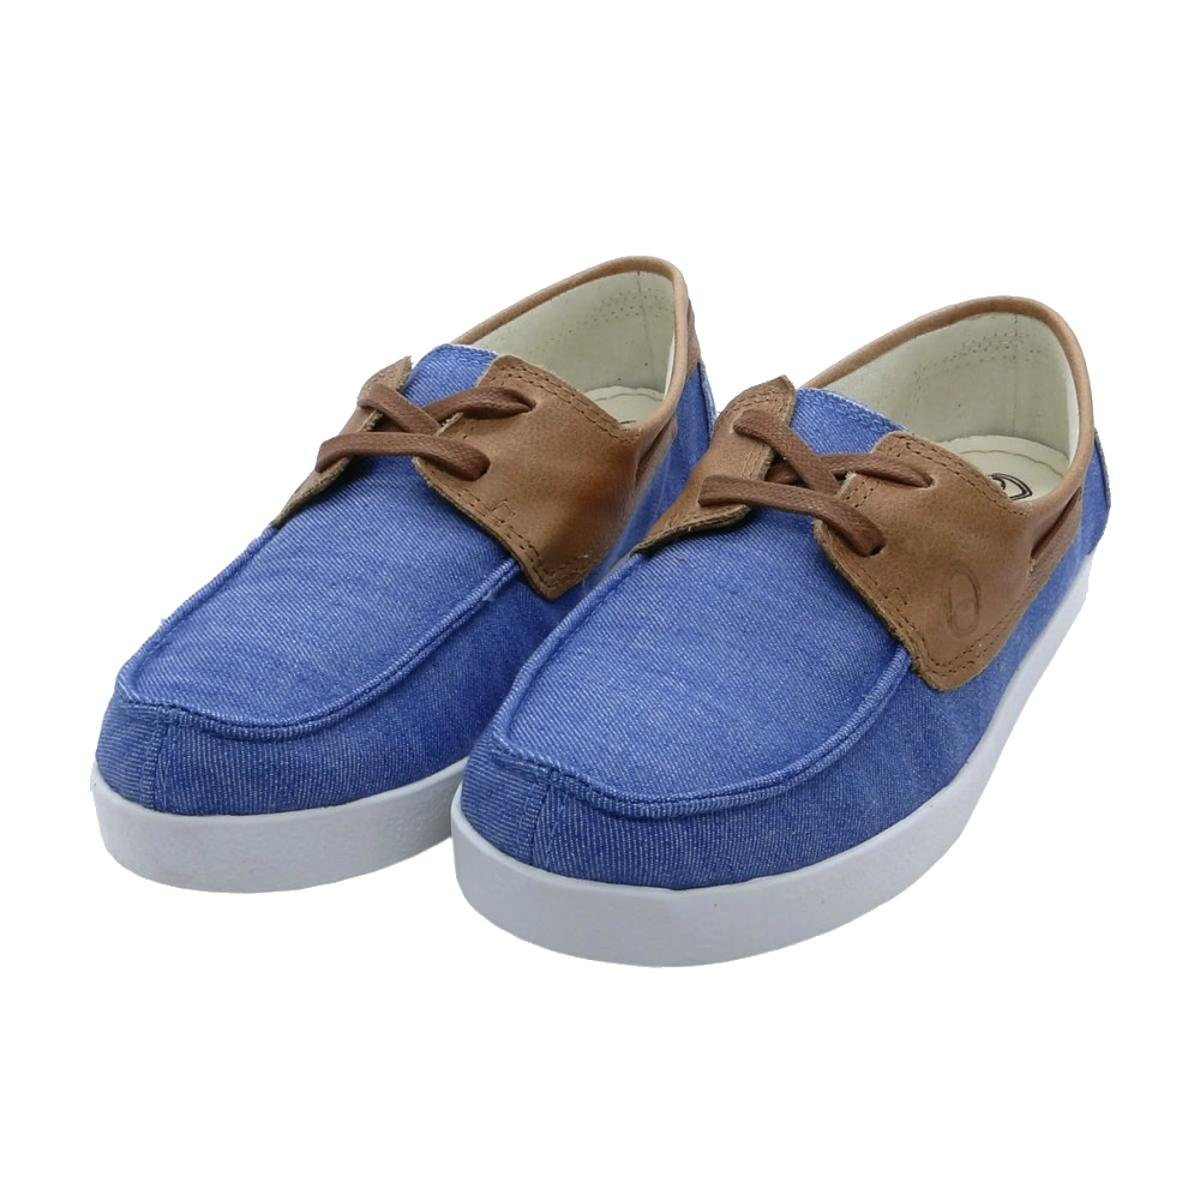 Sider Perky Light Chambray - Azul Claro